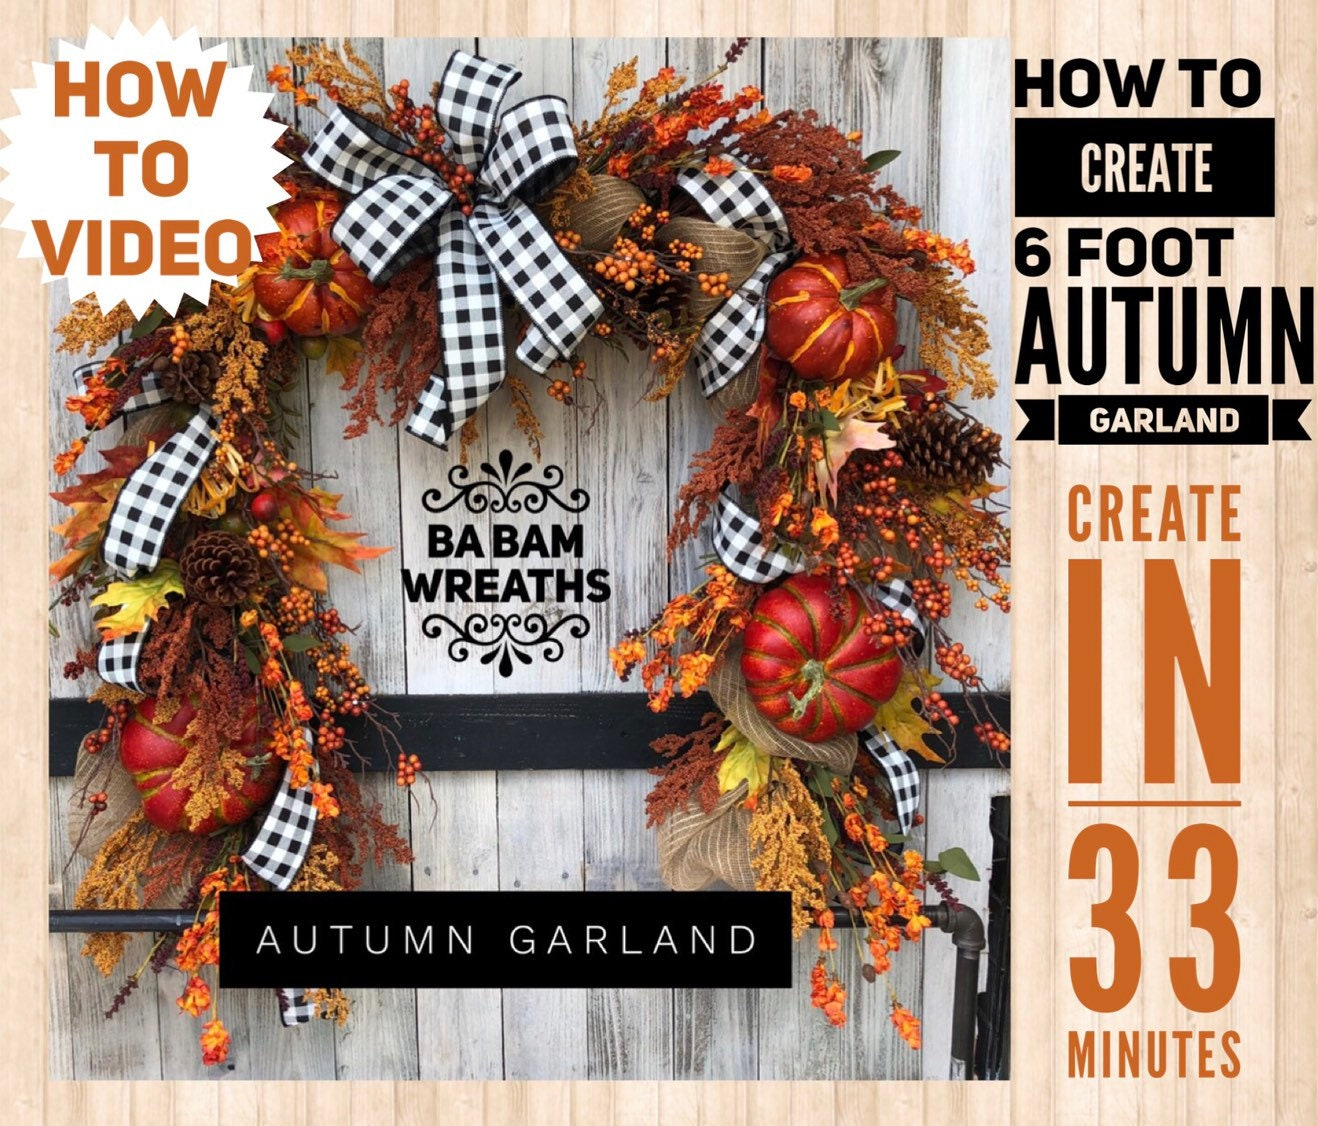 How To Video How To Wreath Wreath Tutorial Autumn Wreath Autumn Garland Fall Wreath Fall Garland